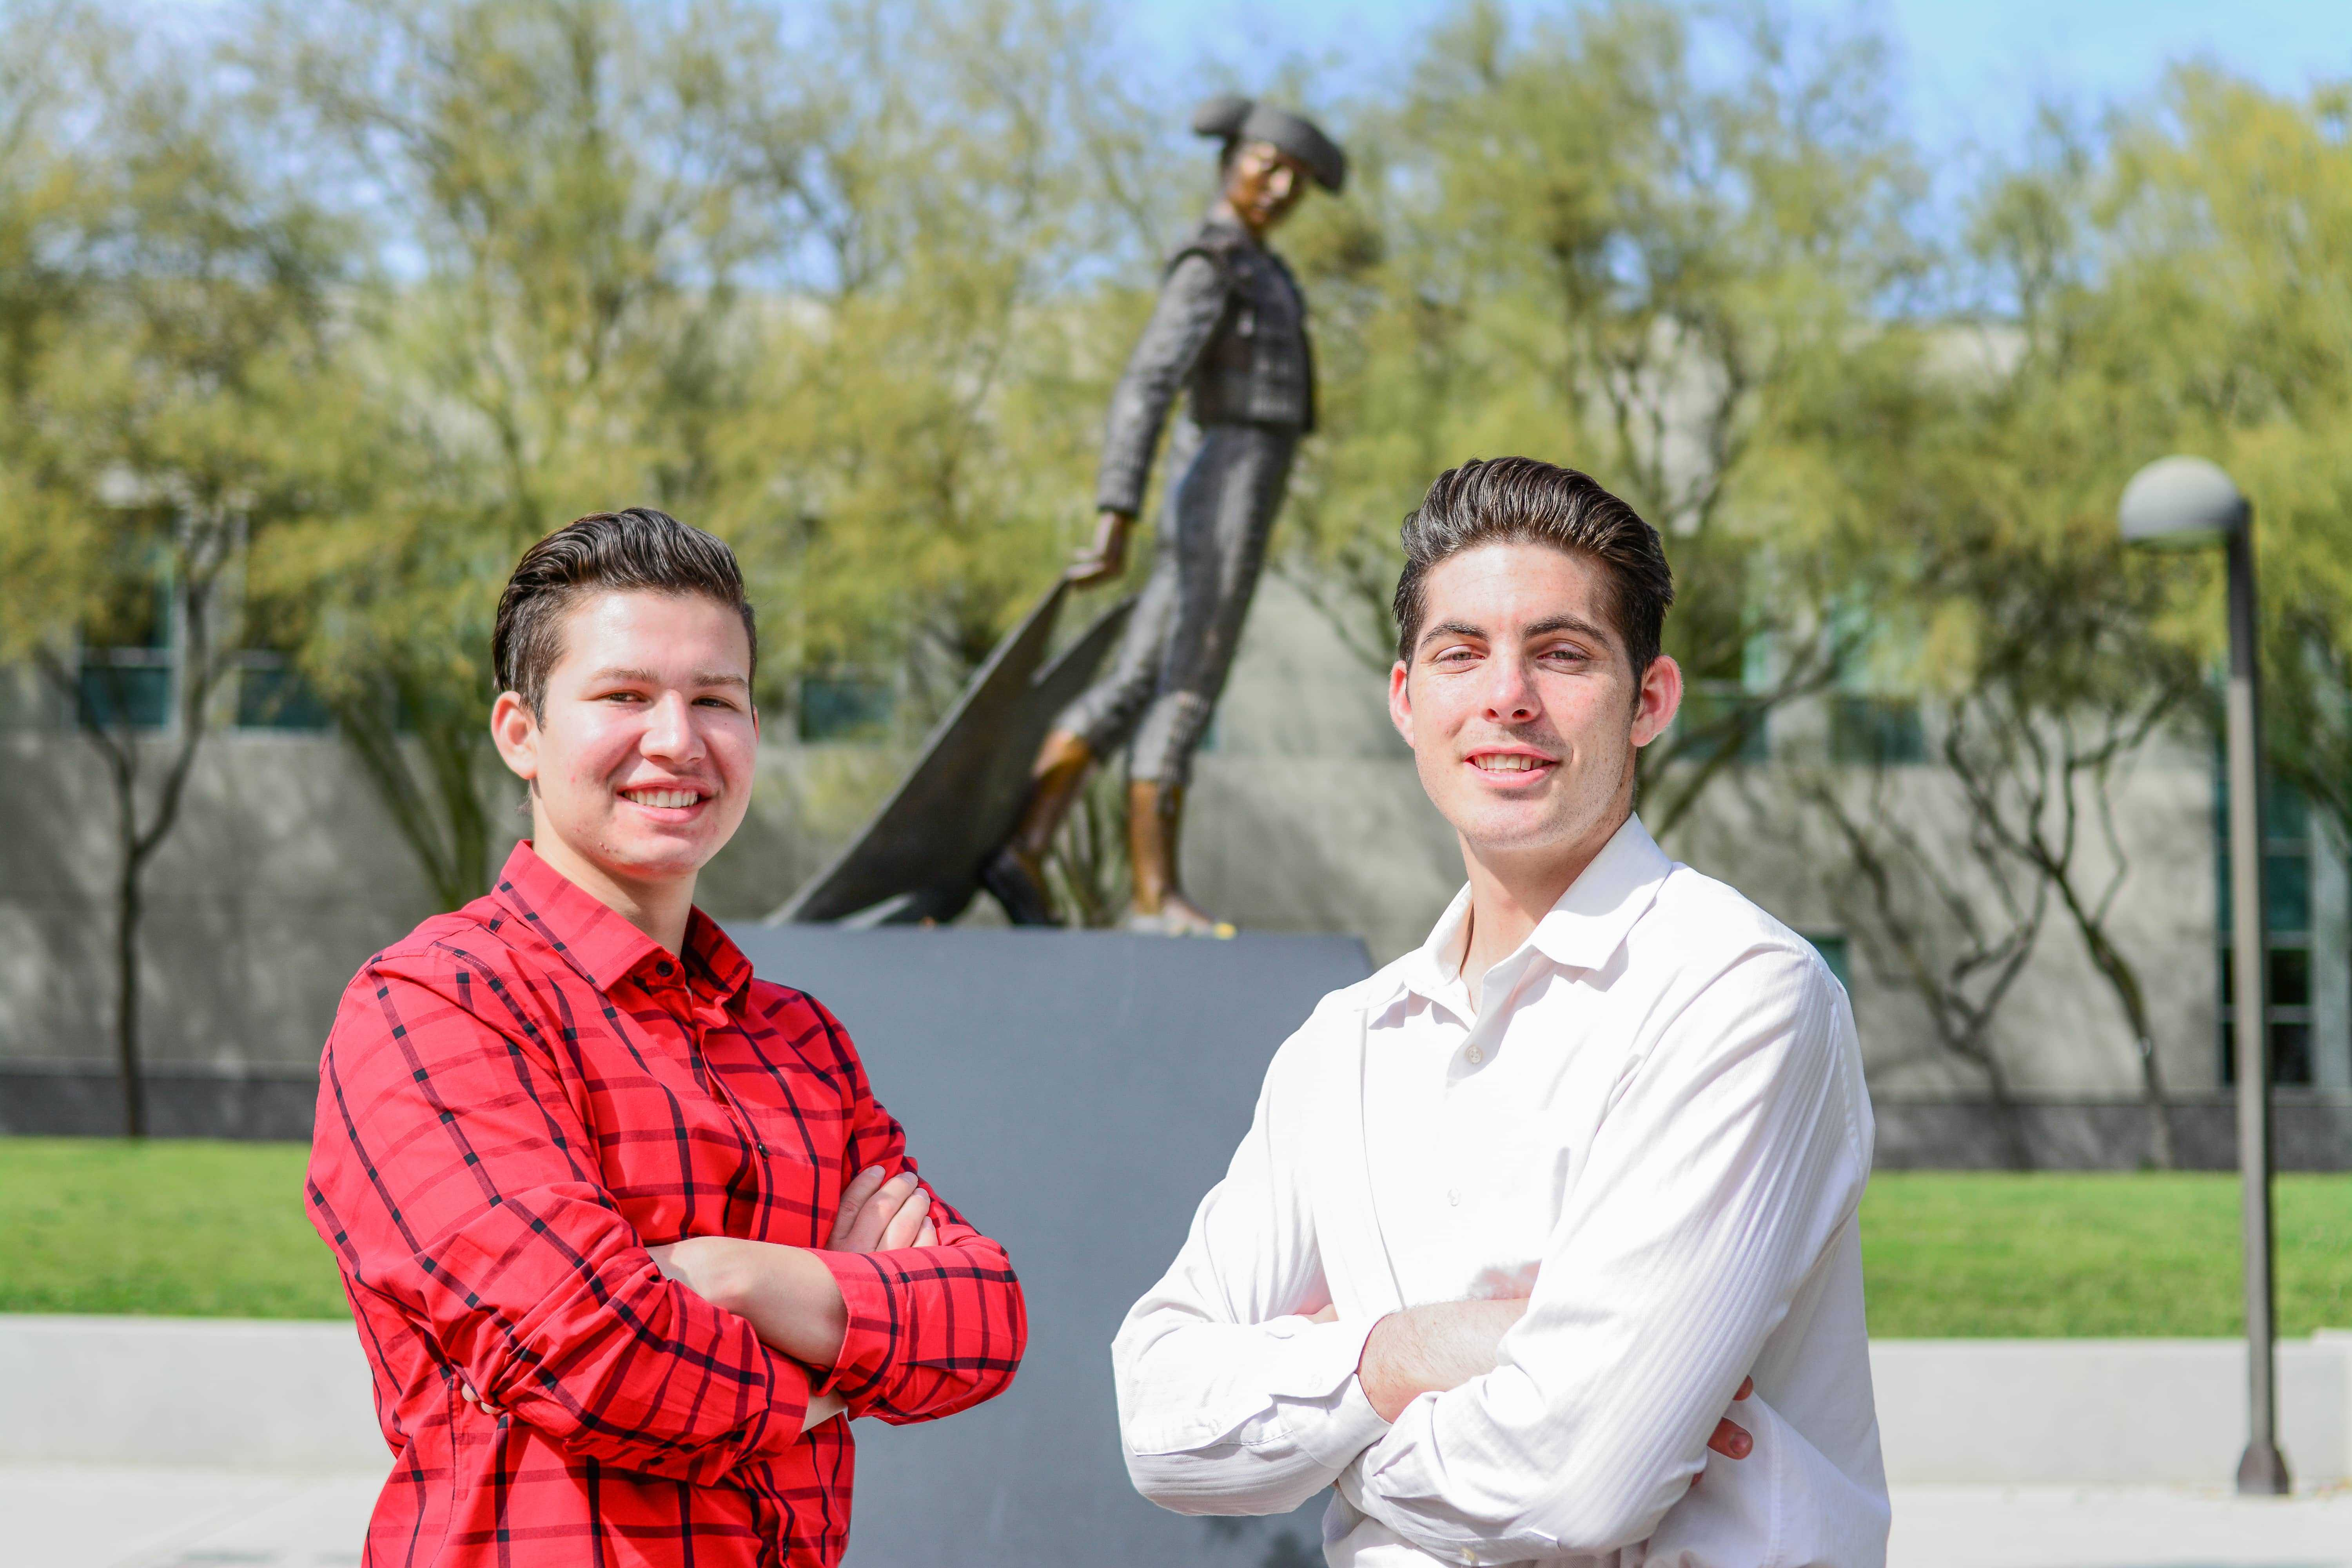 two men pose with arms crossed in front of the matador statue